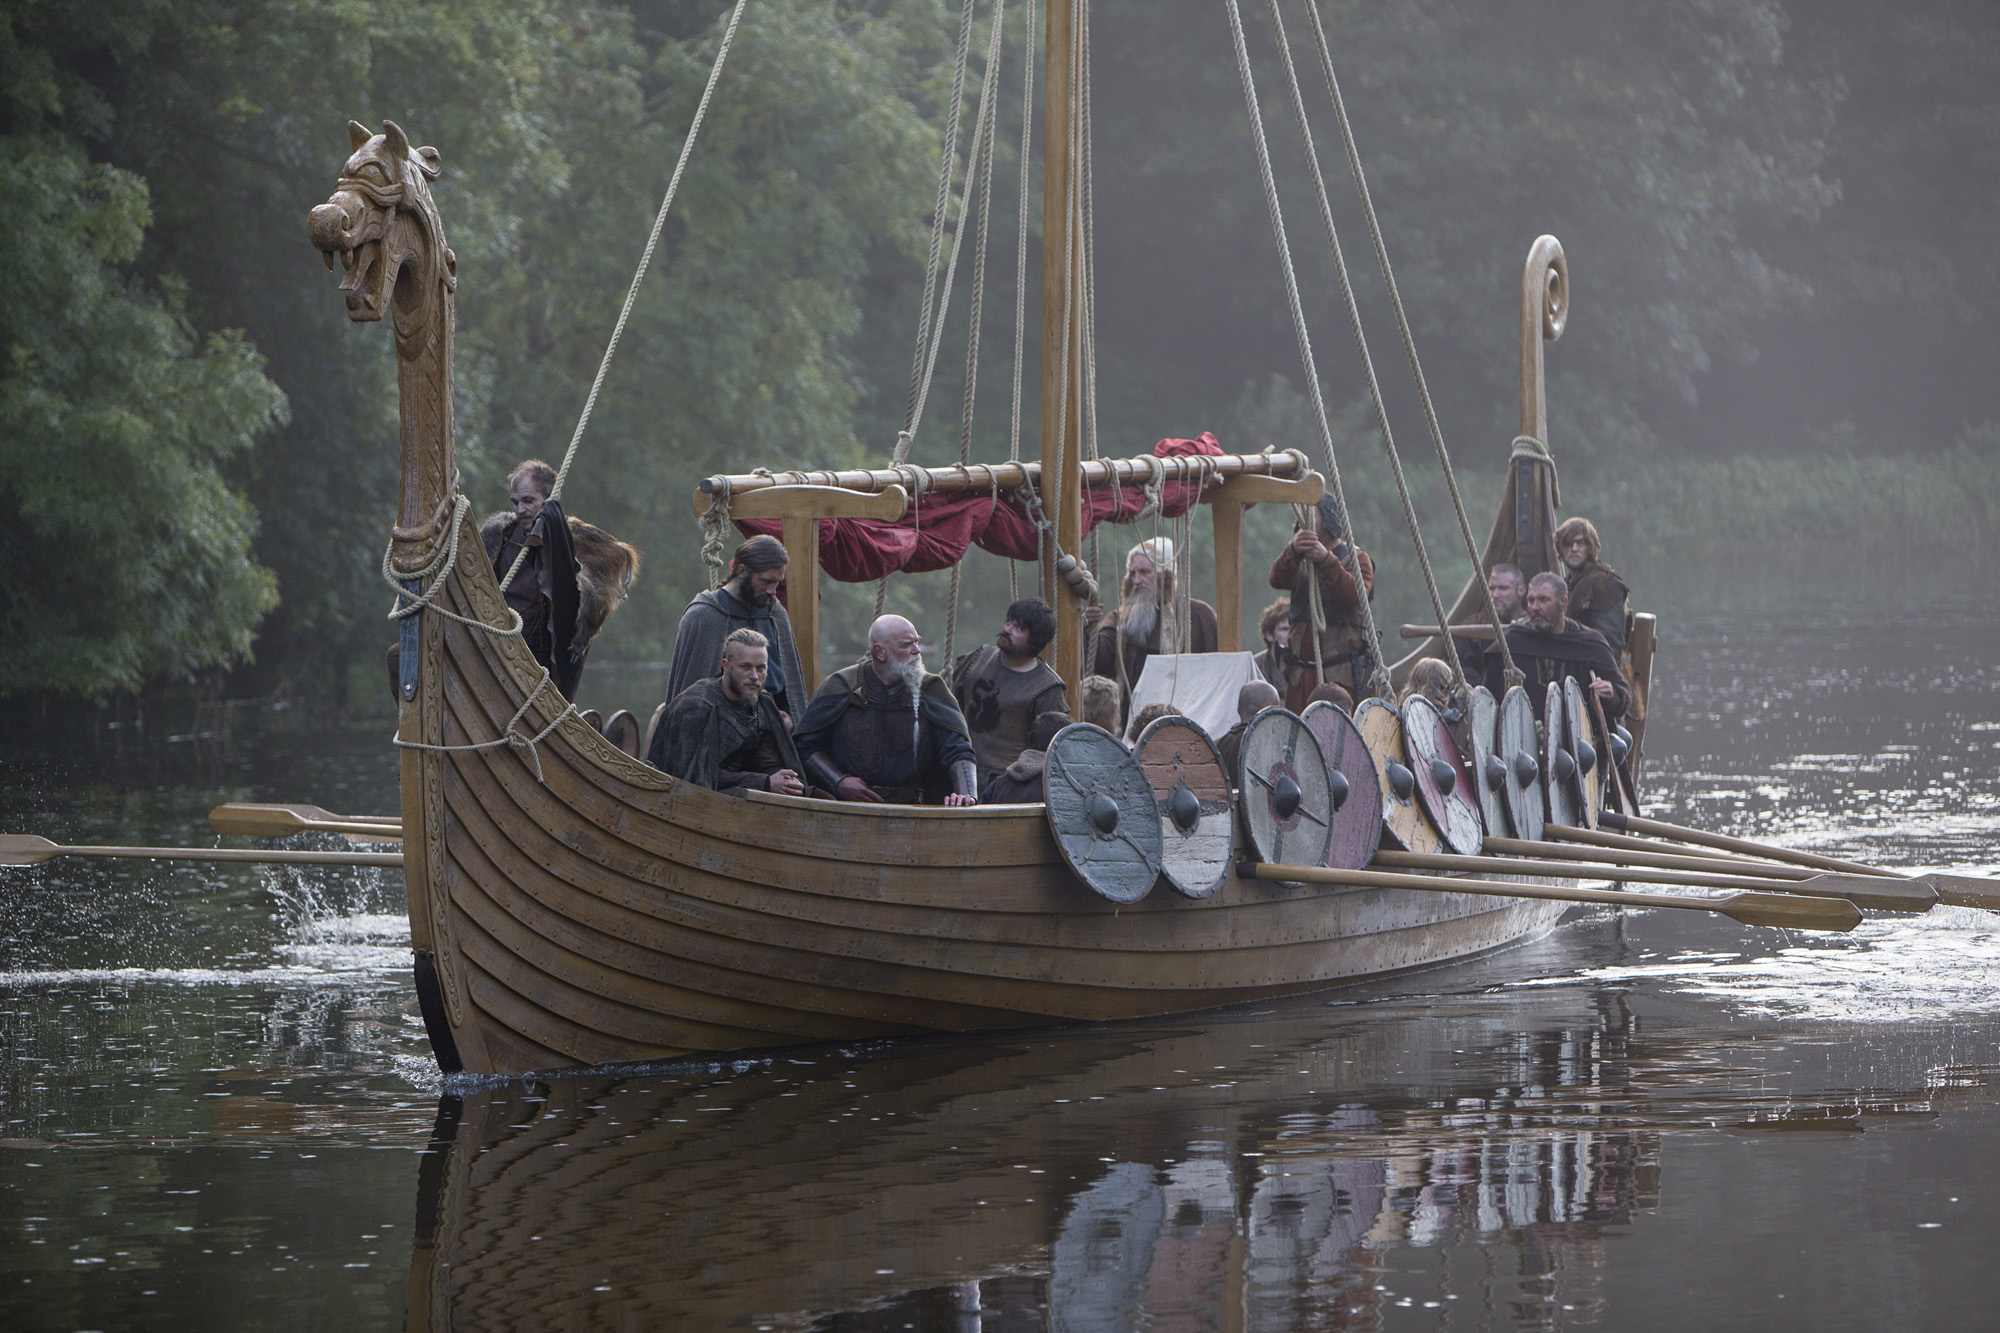 dendrochronological dating of the viking age ship